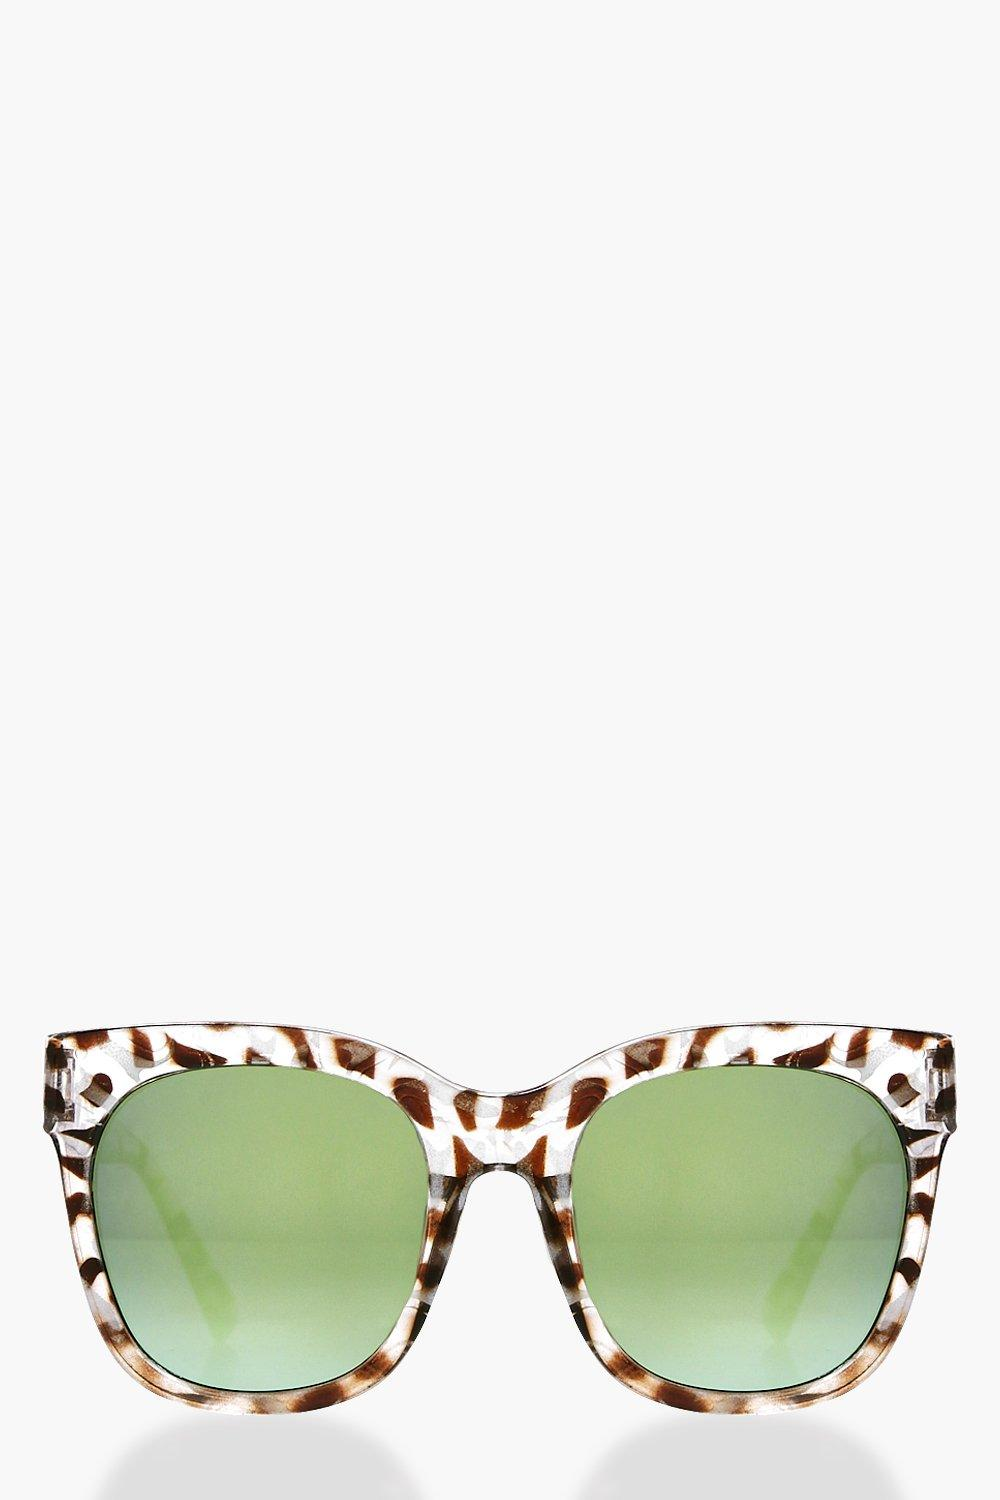 Animal Print Revo Lense Sunglasses  brown